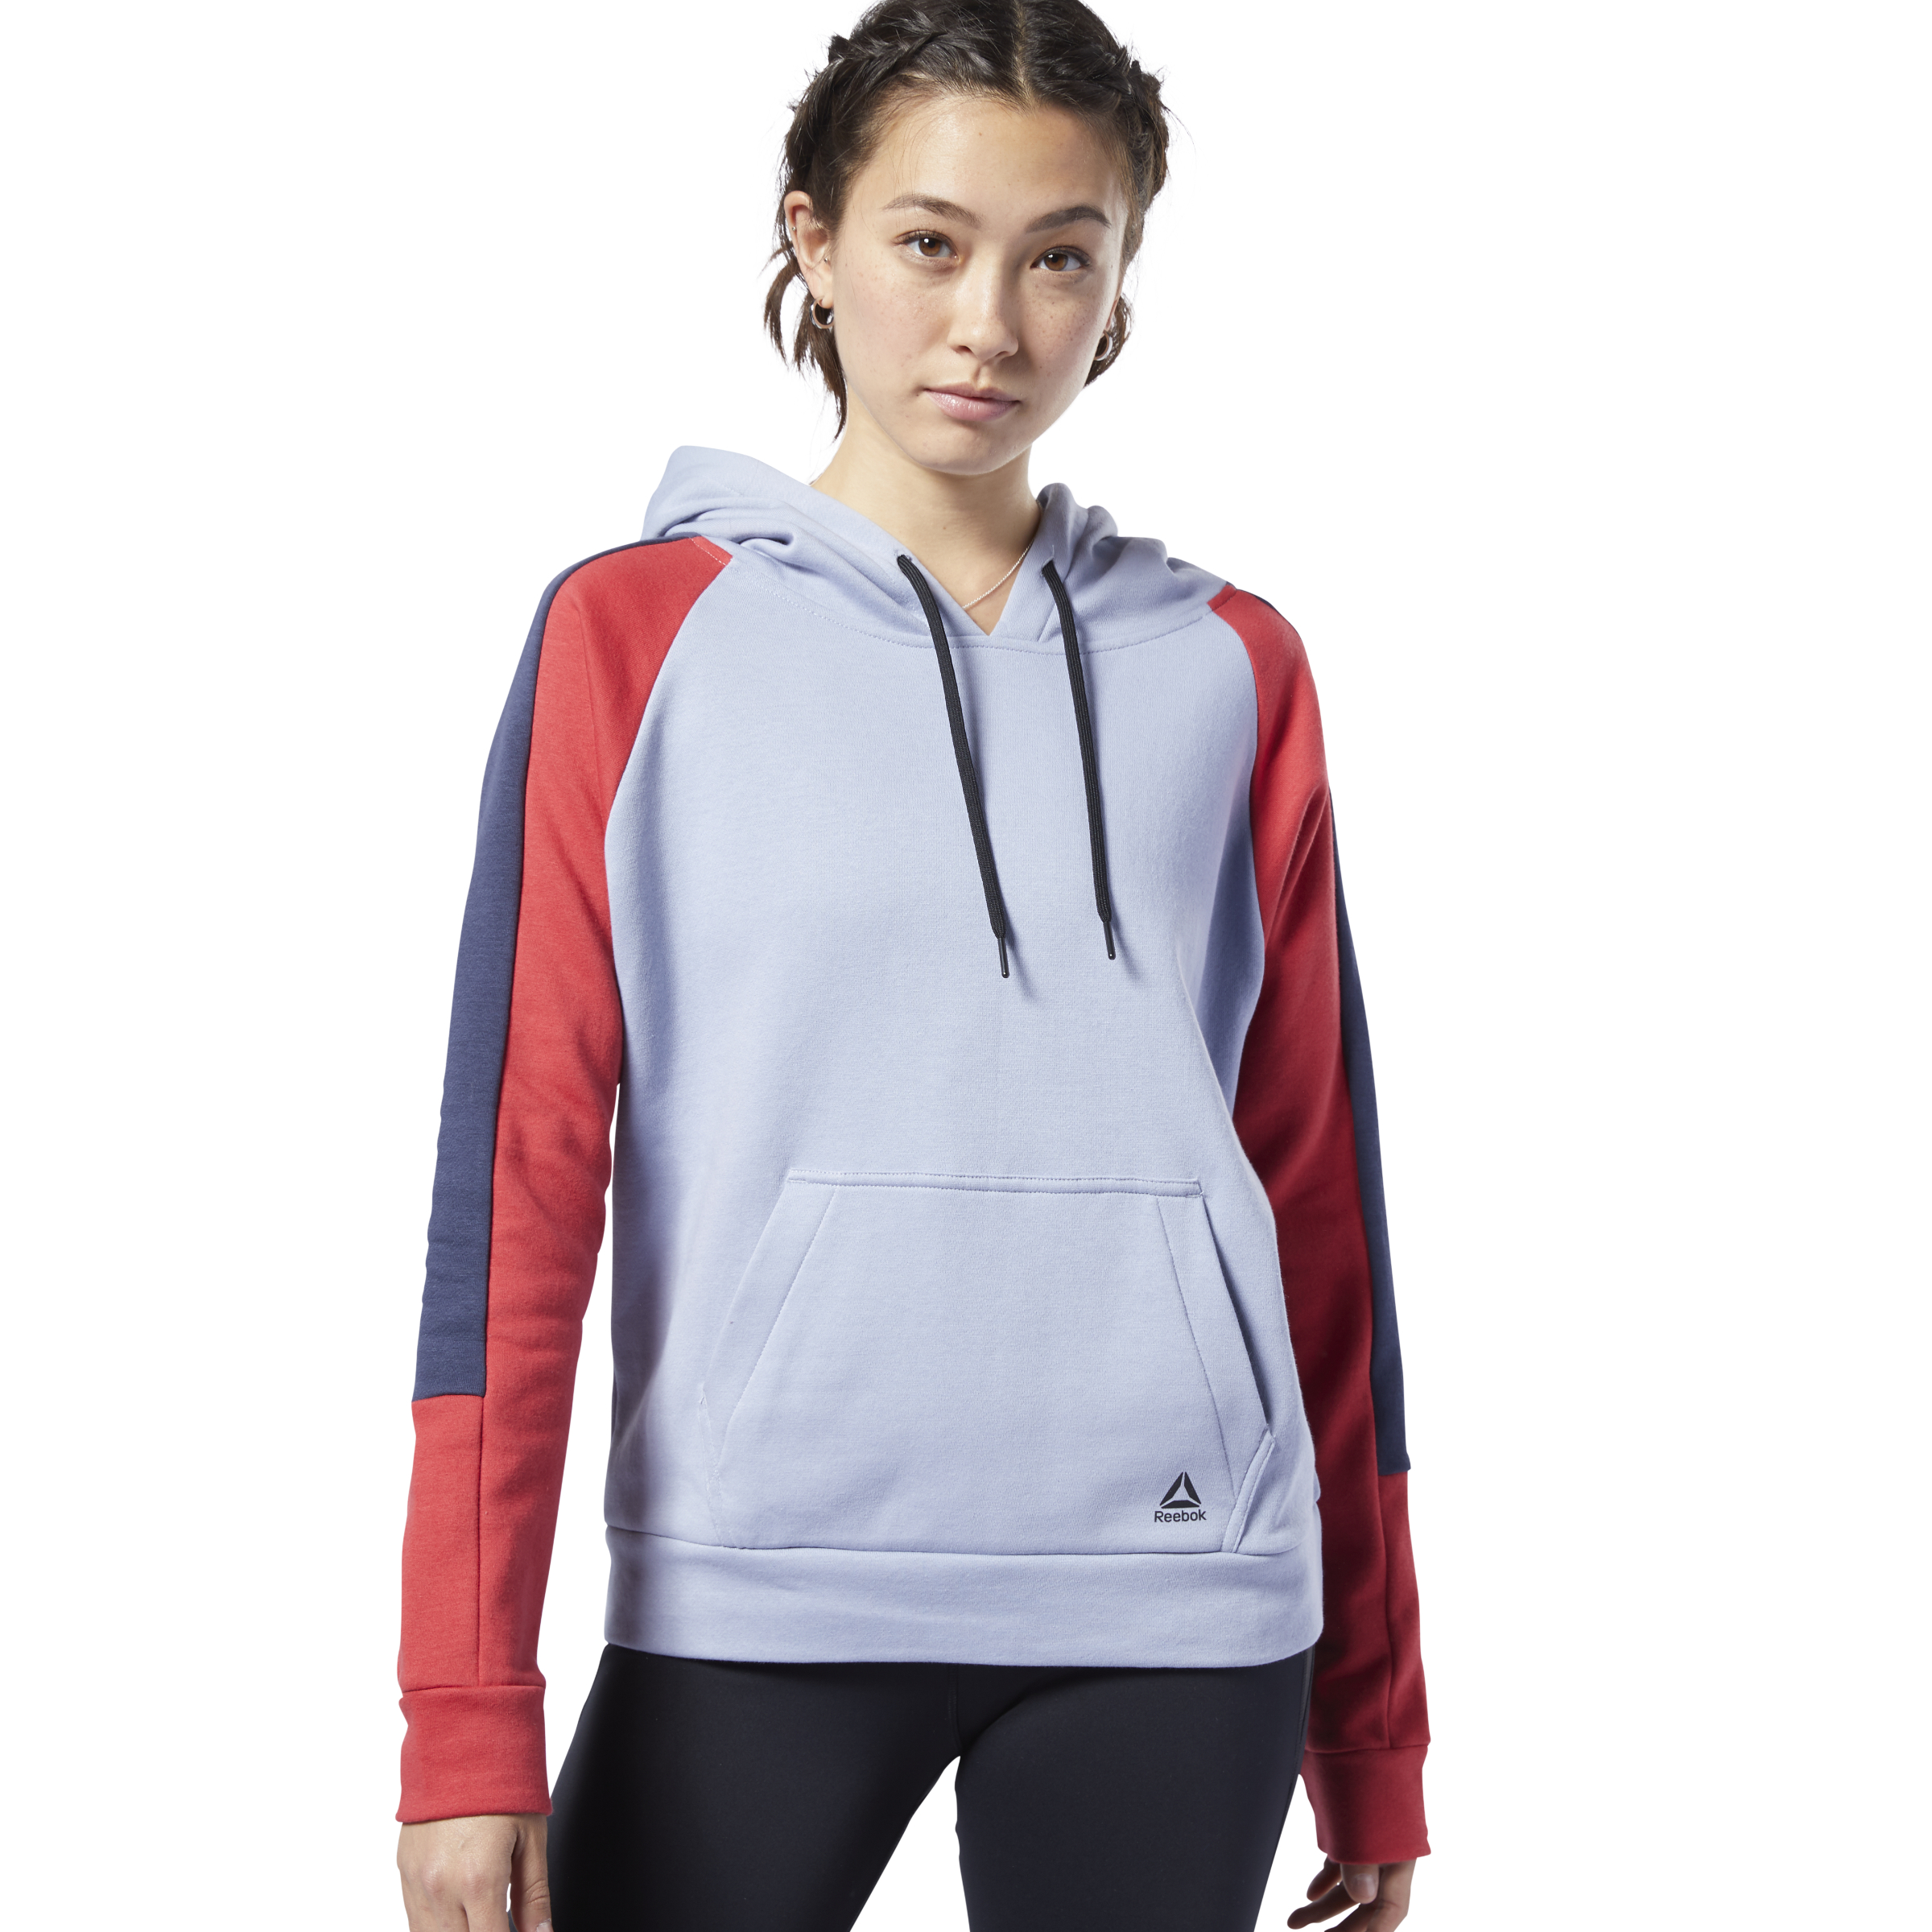 Reebok Women/'s Workout Ready Colorblocked Cover-Up